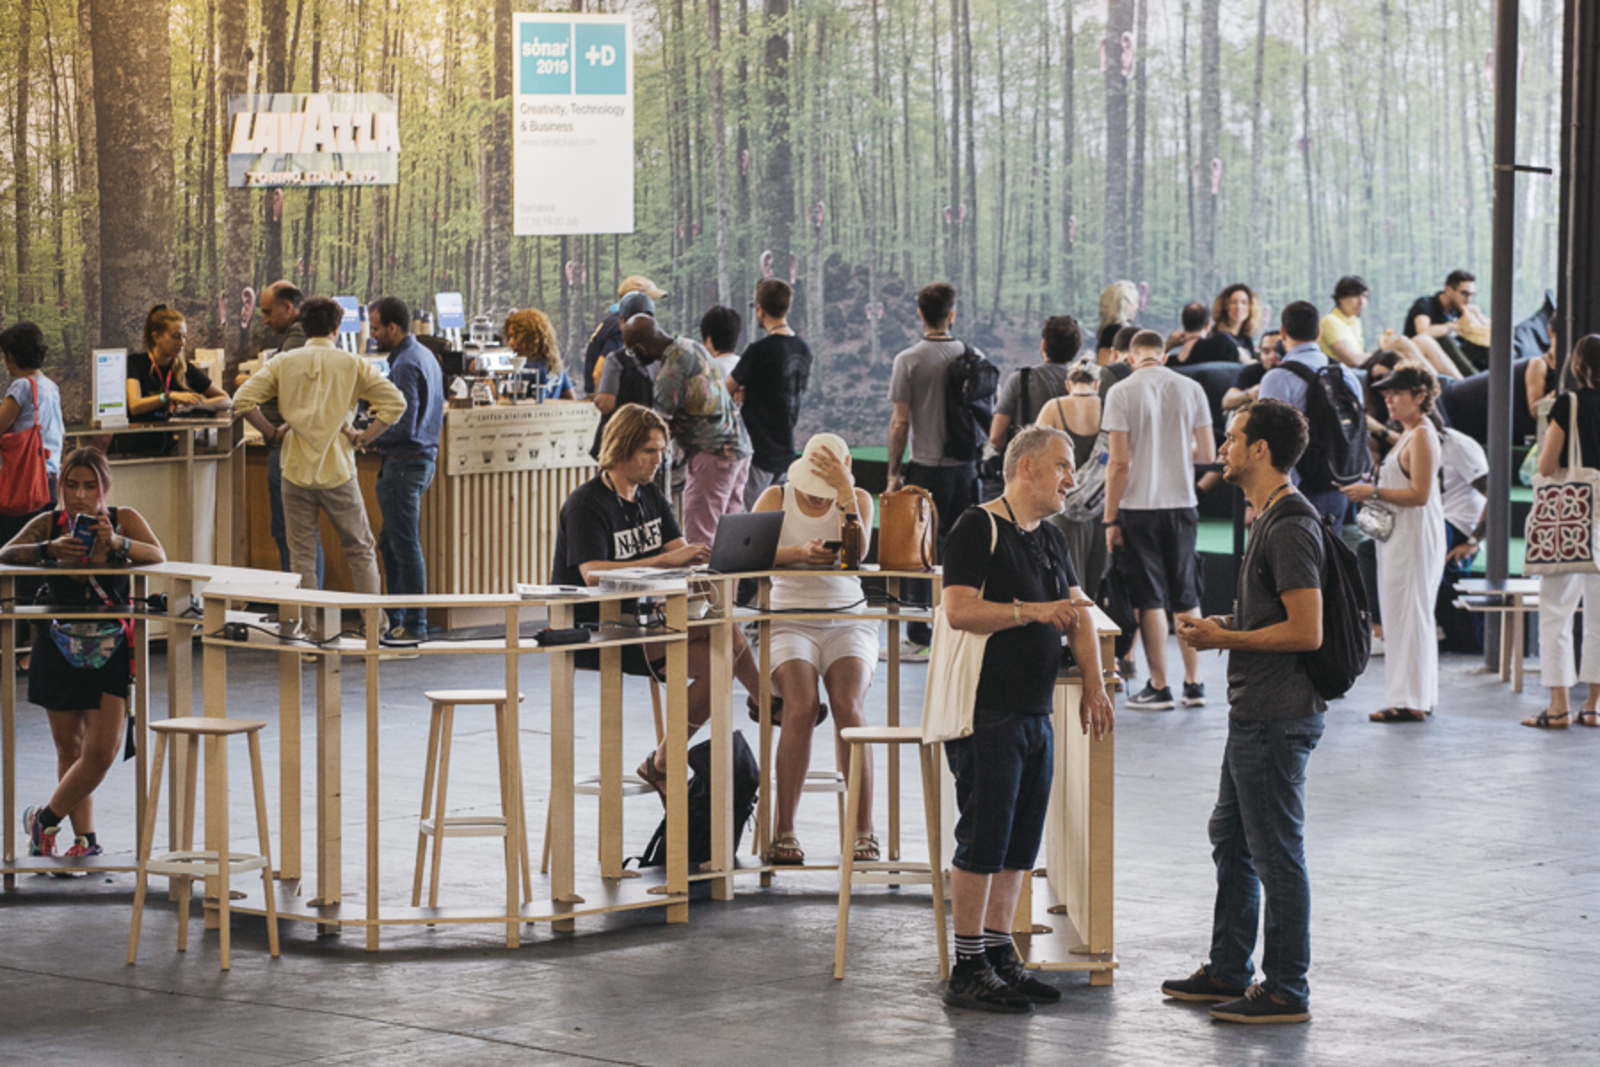 A quiet moment at the Networking Bar, Sónar+D